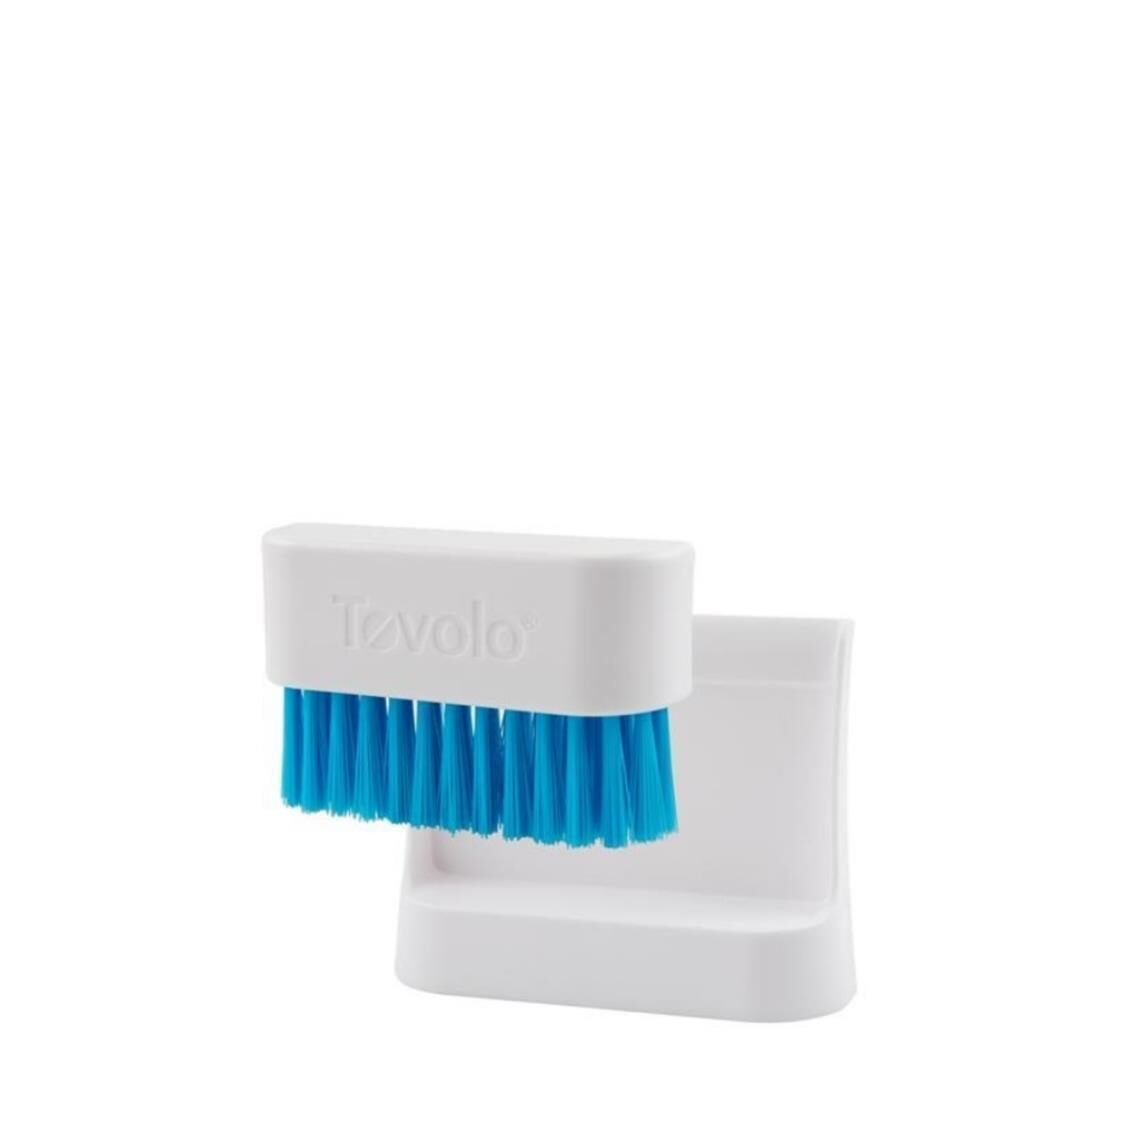 Magnetic Countertop Brush  Dustpan